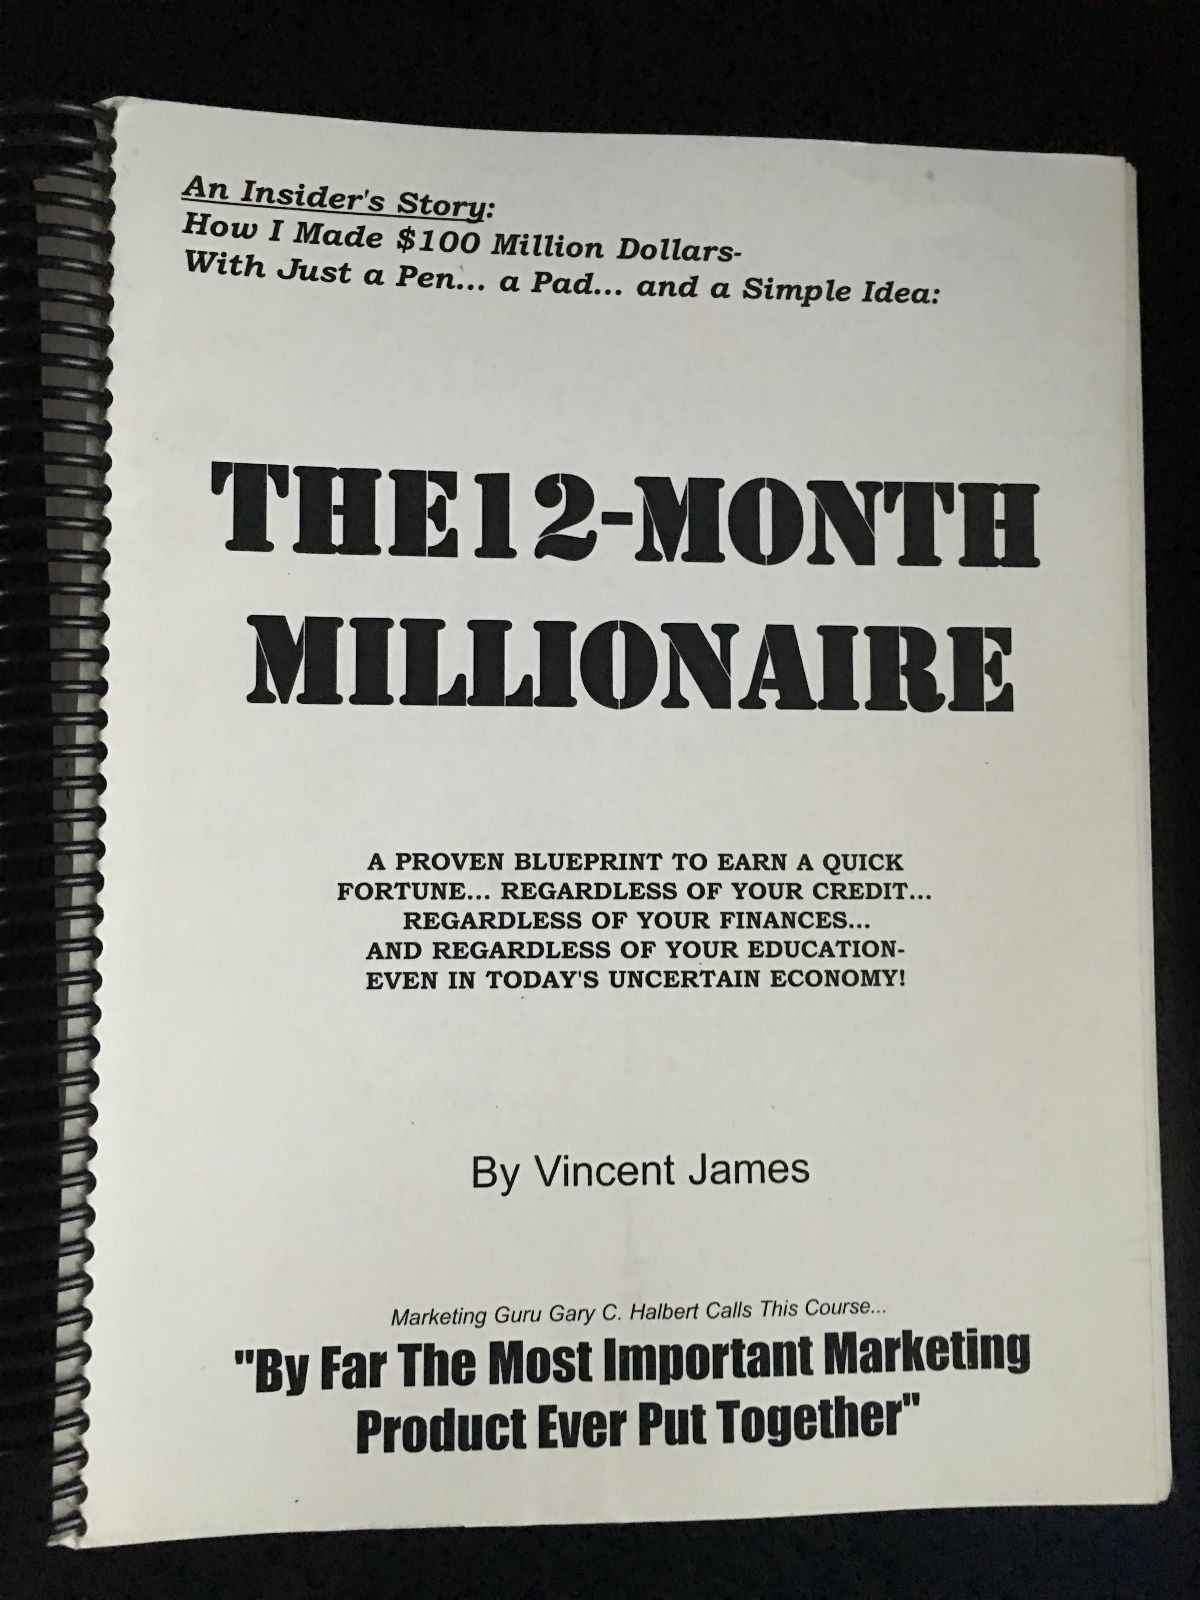 12 month millionaire by vincent james physical book gary halbert 12 month millionaire by vincent james physical book gary halbert jay abraham the long malvernweather Images